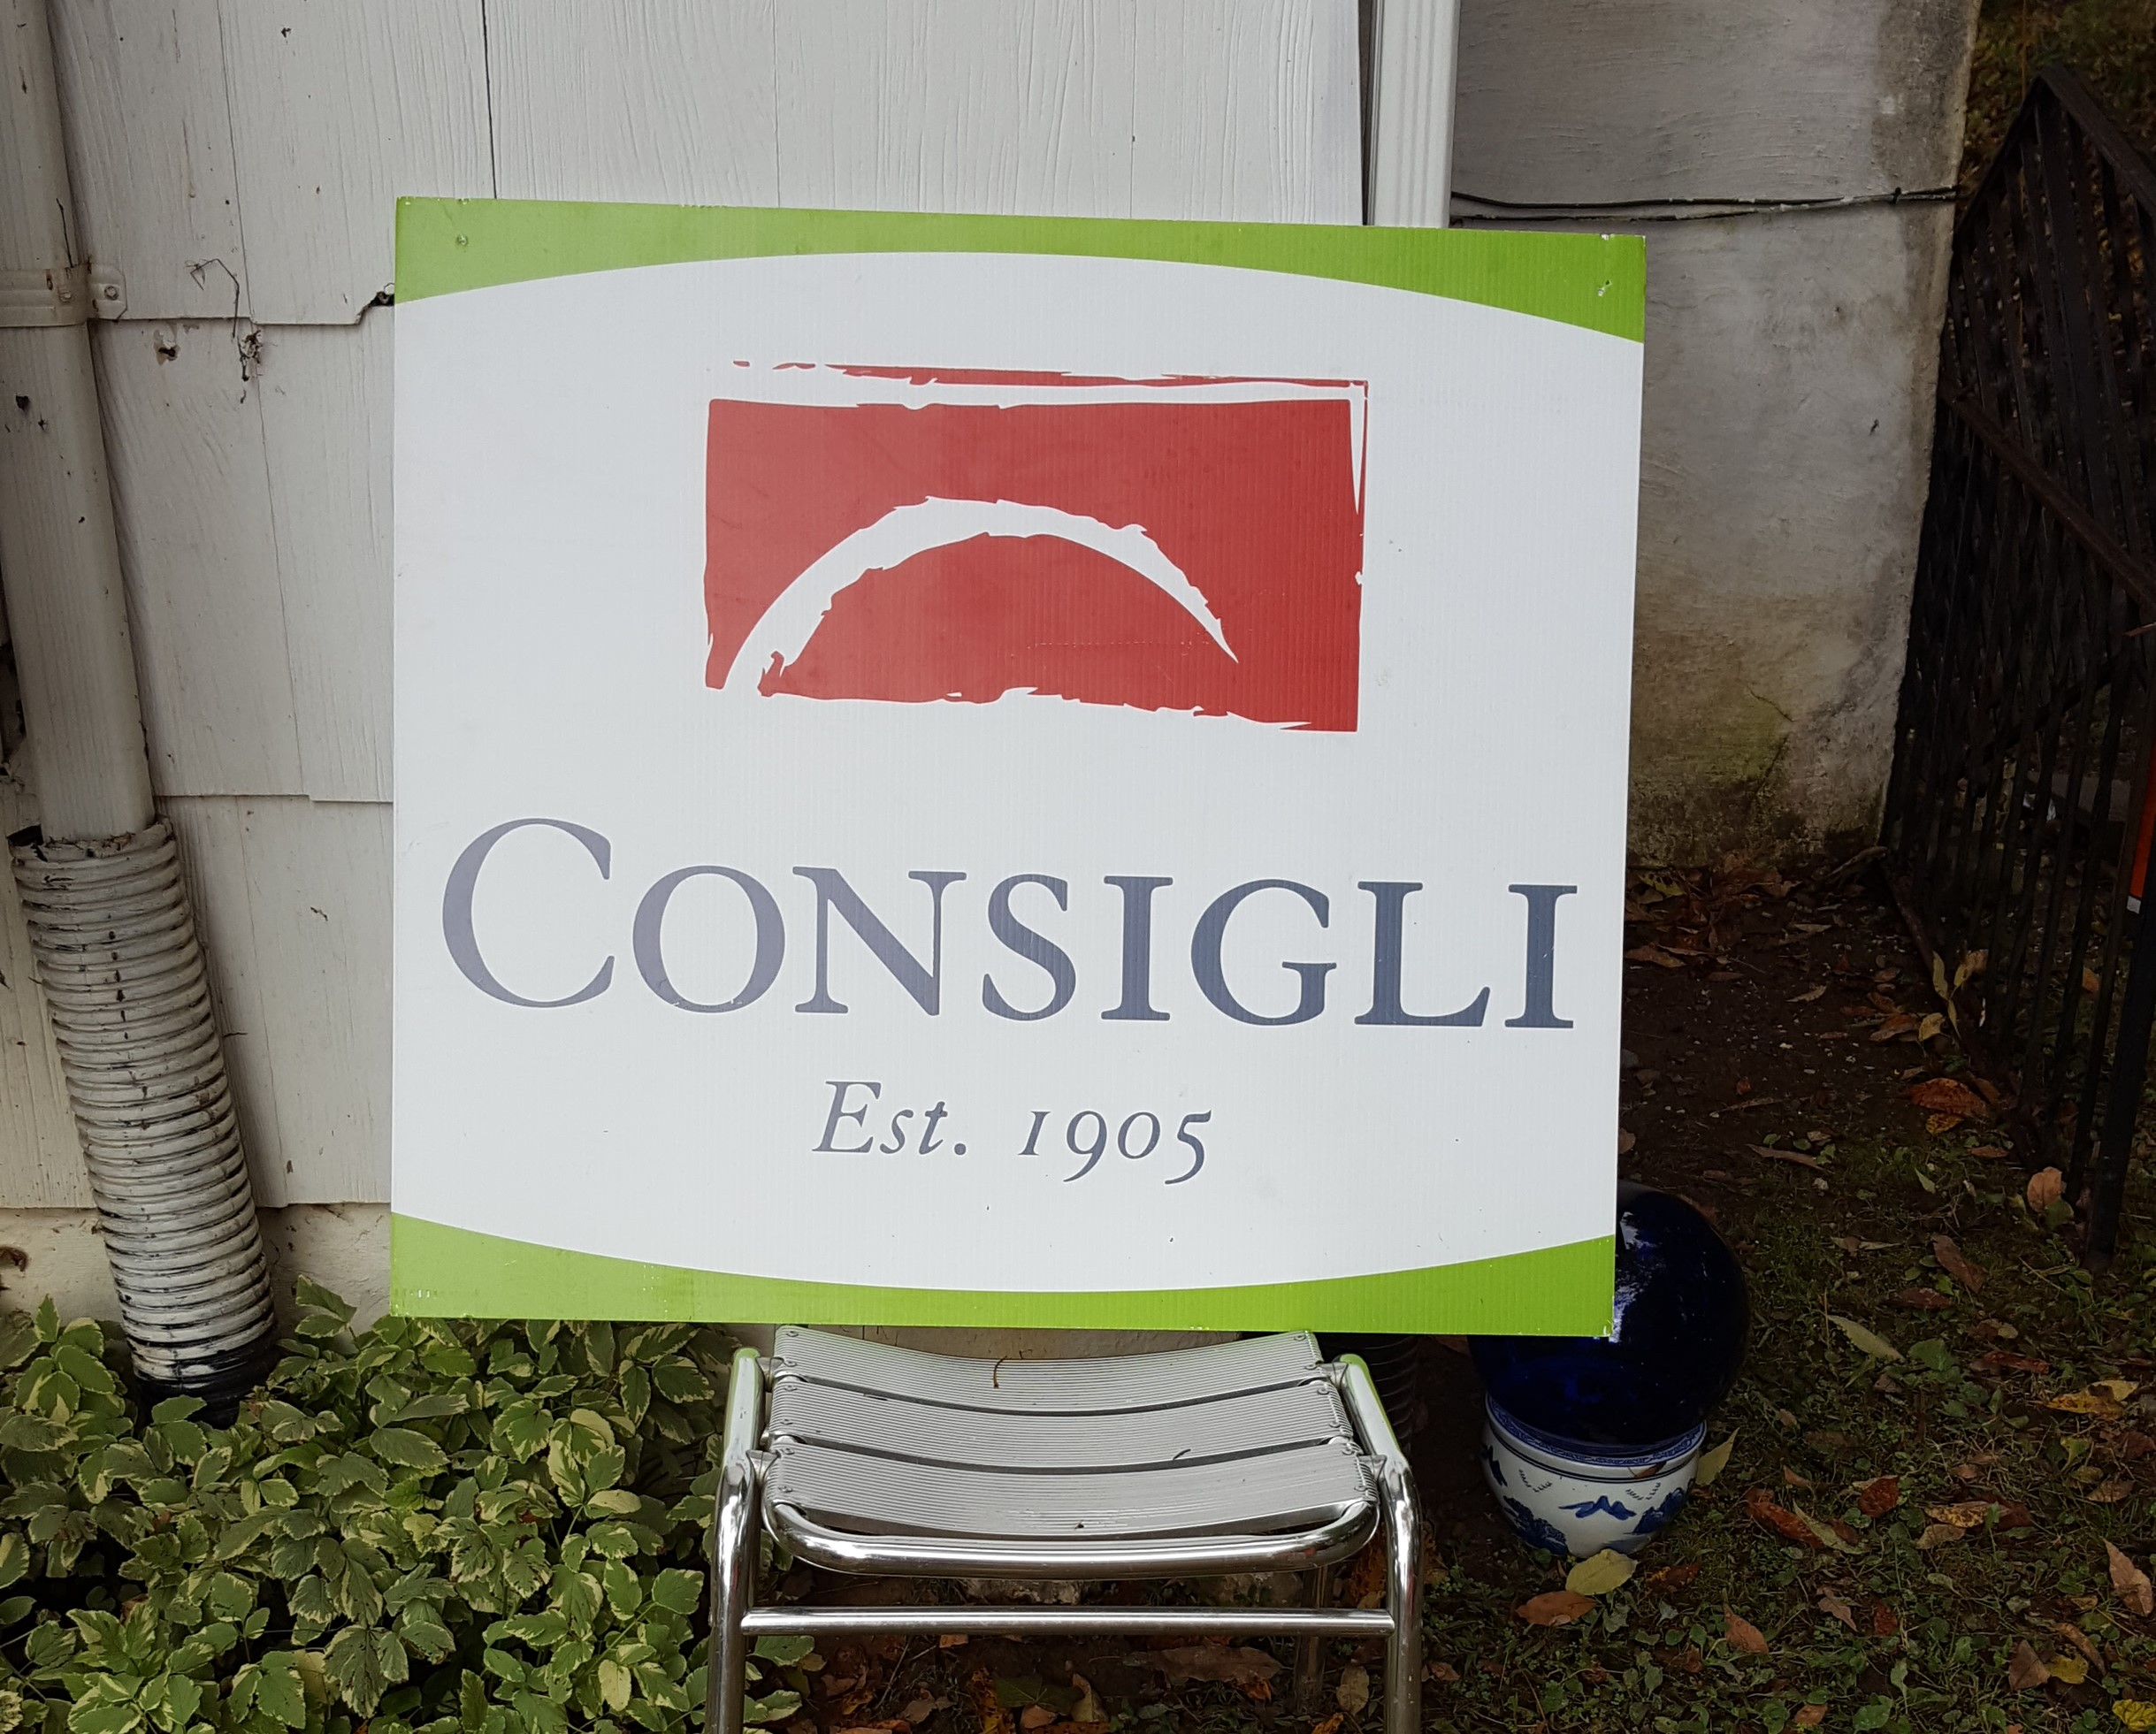 Consigli sign at a project site.